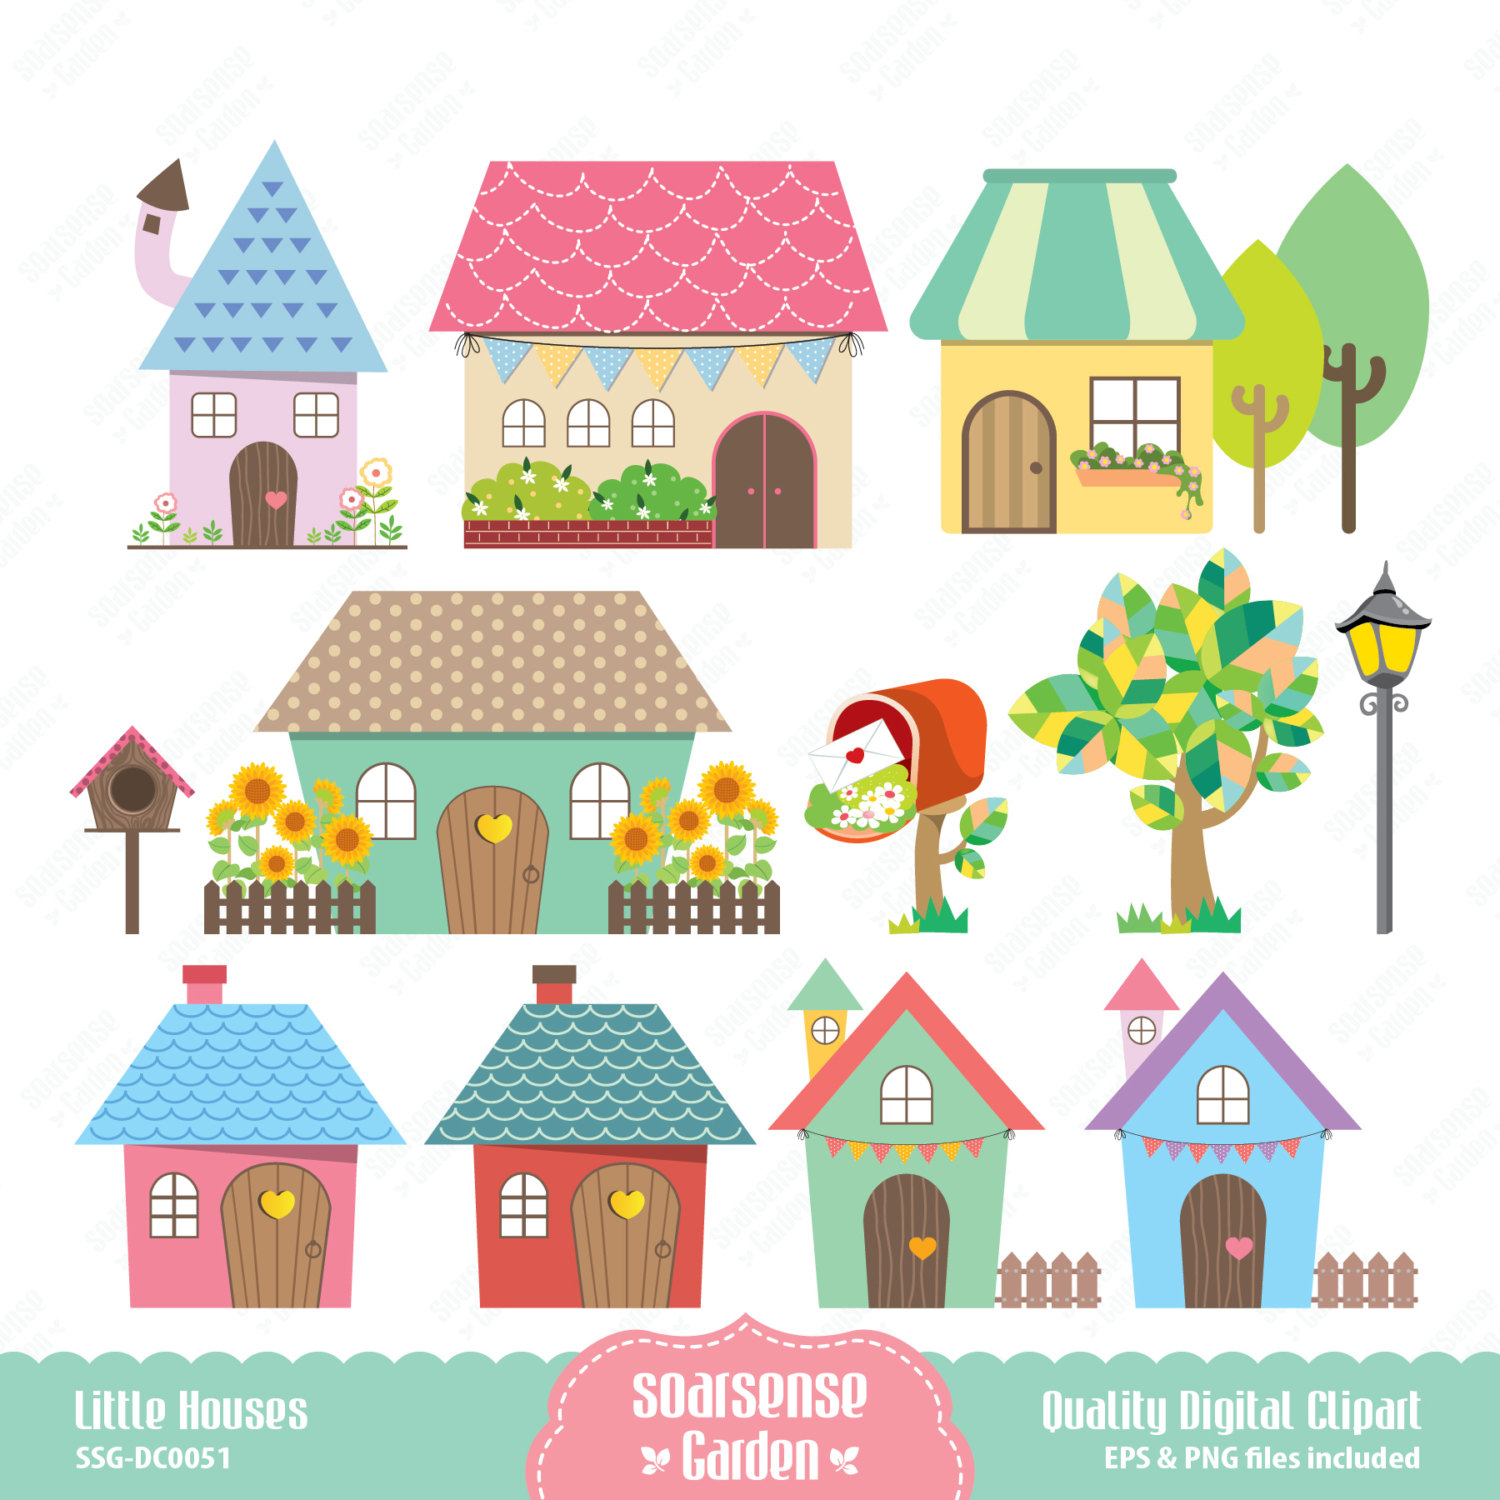 Cute House Clipart & Look At Clip Art Images - ClipartLook graphic free download